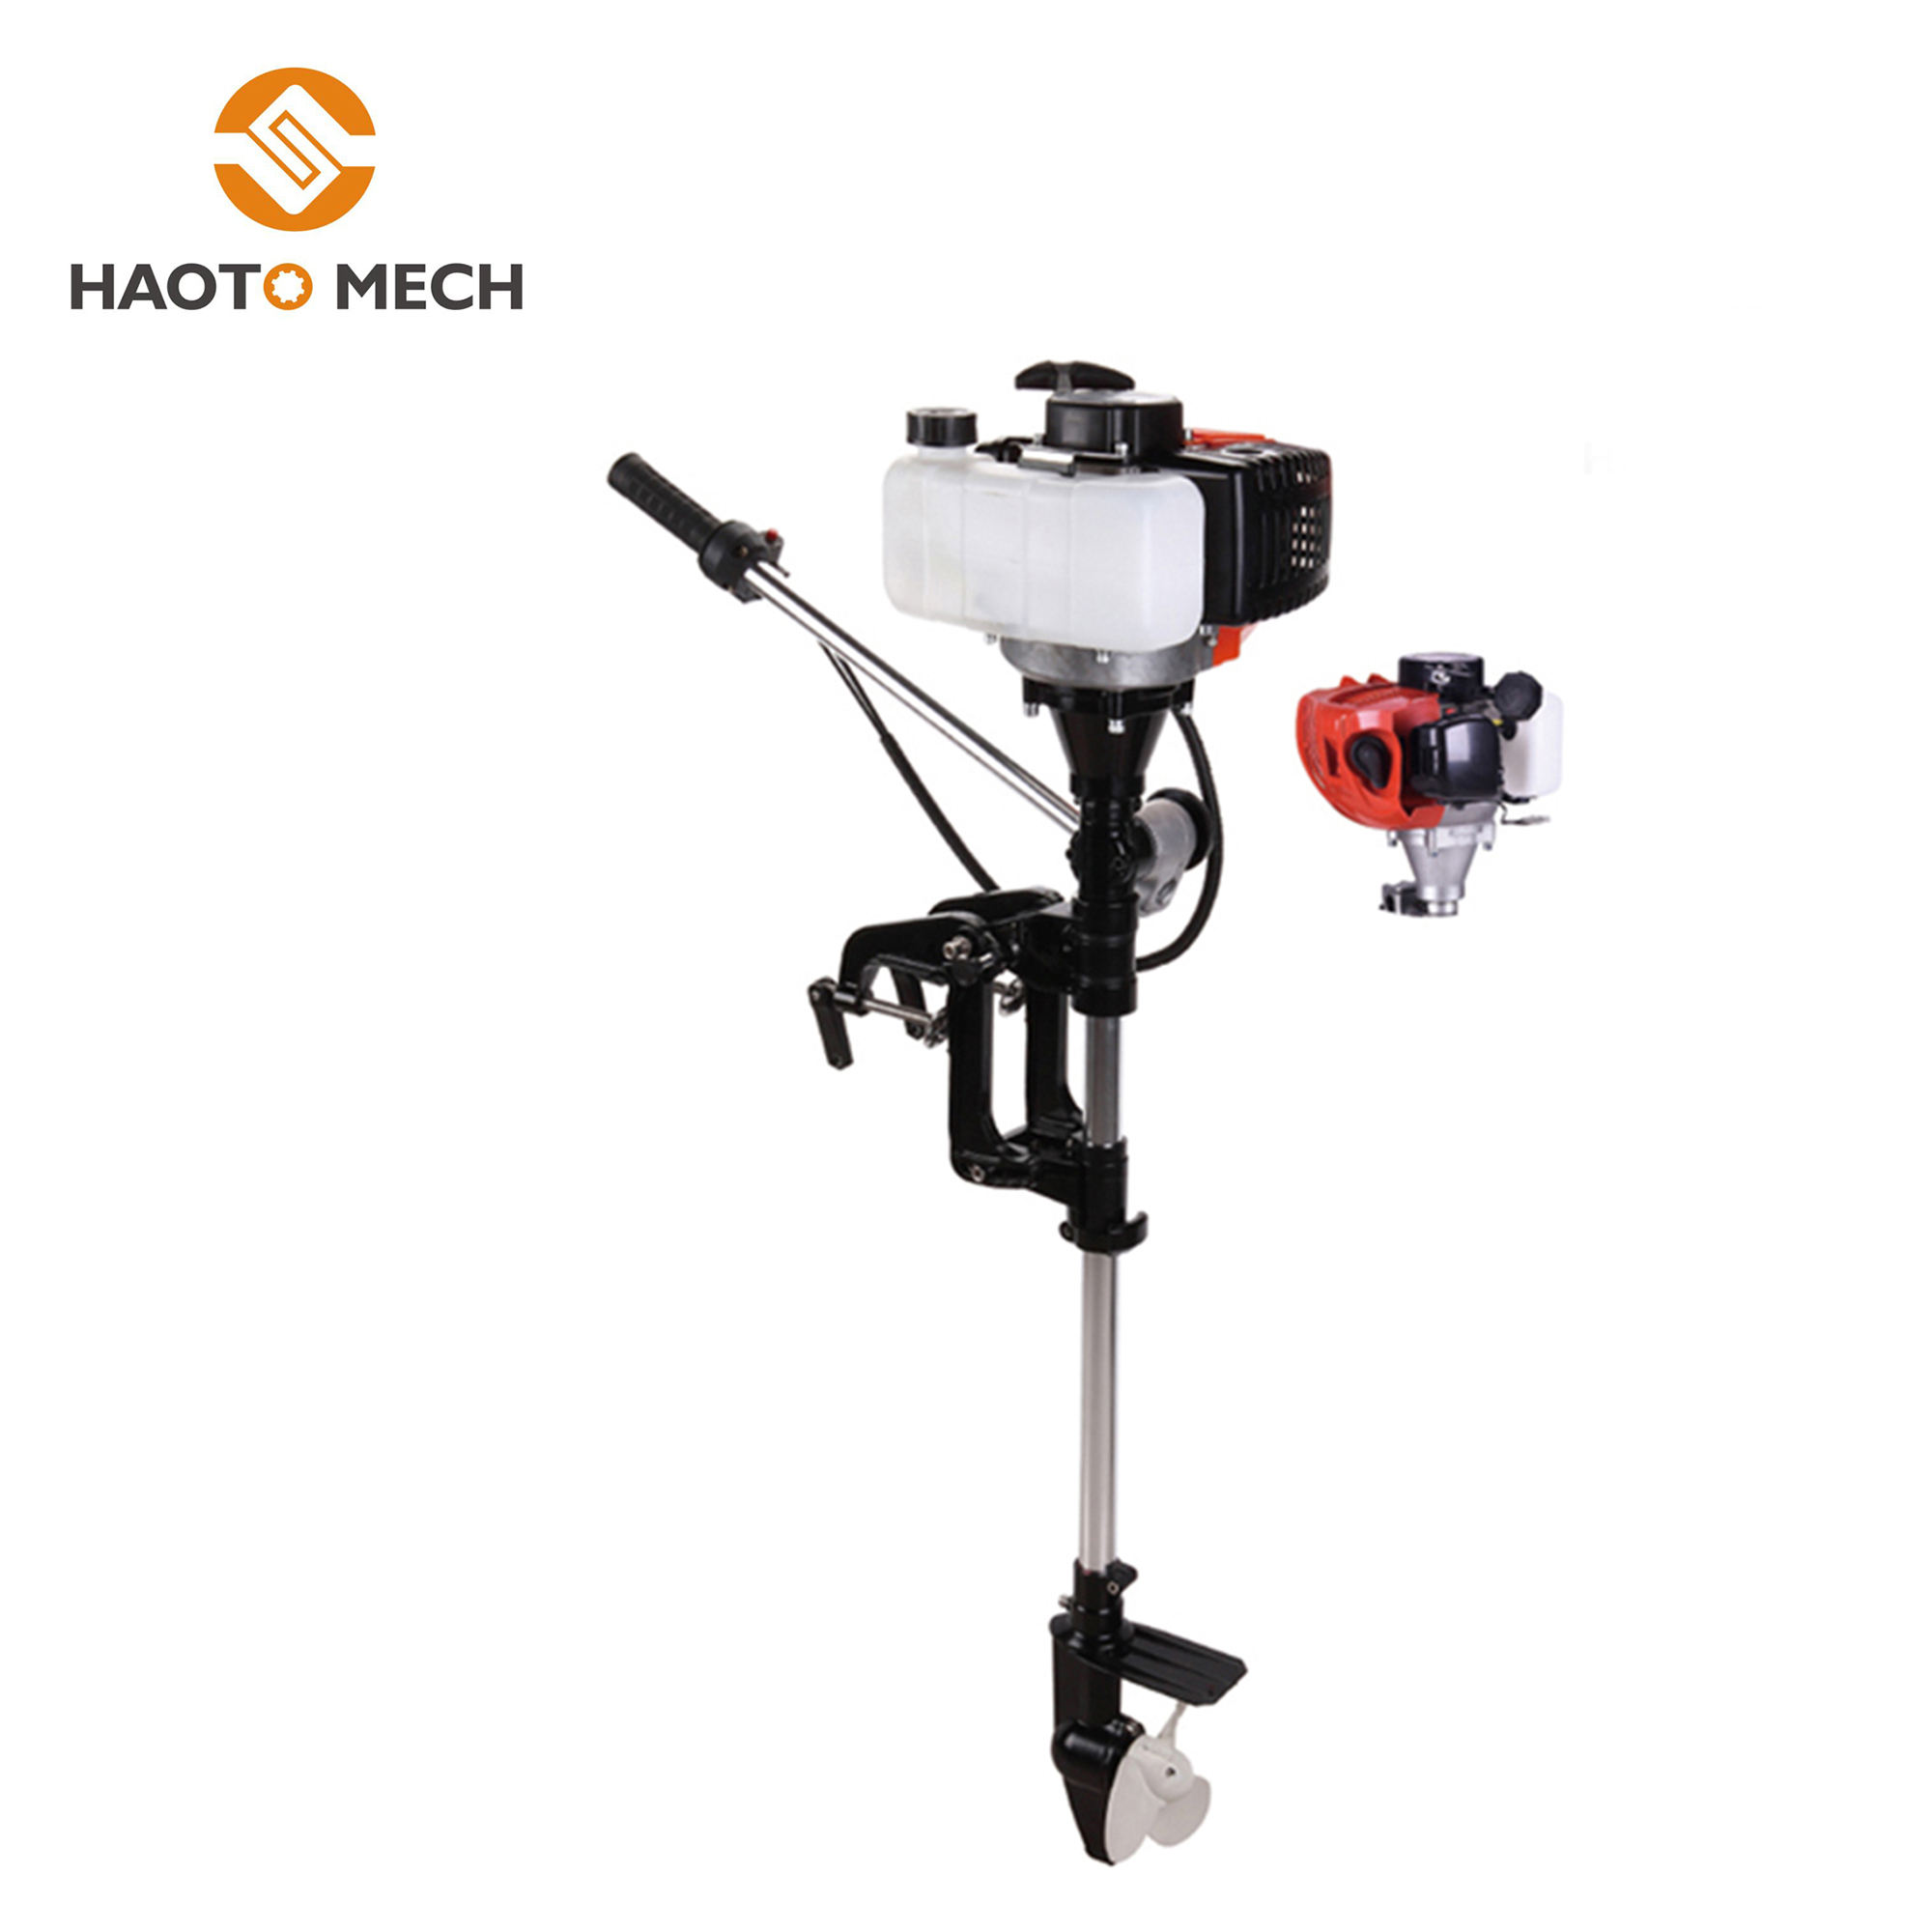 High quality 52cc 2 Stroke Boat Motor Sailing Outboard Engine